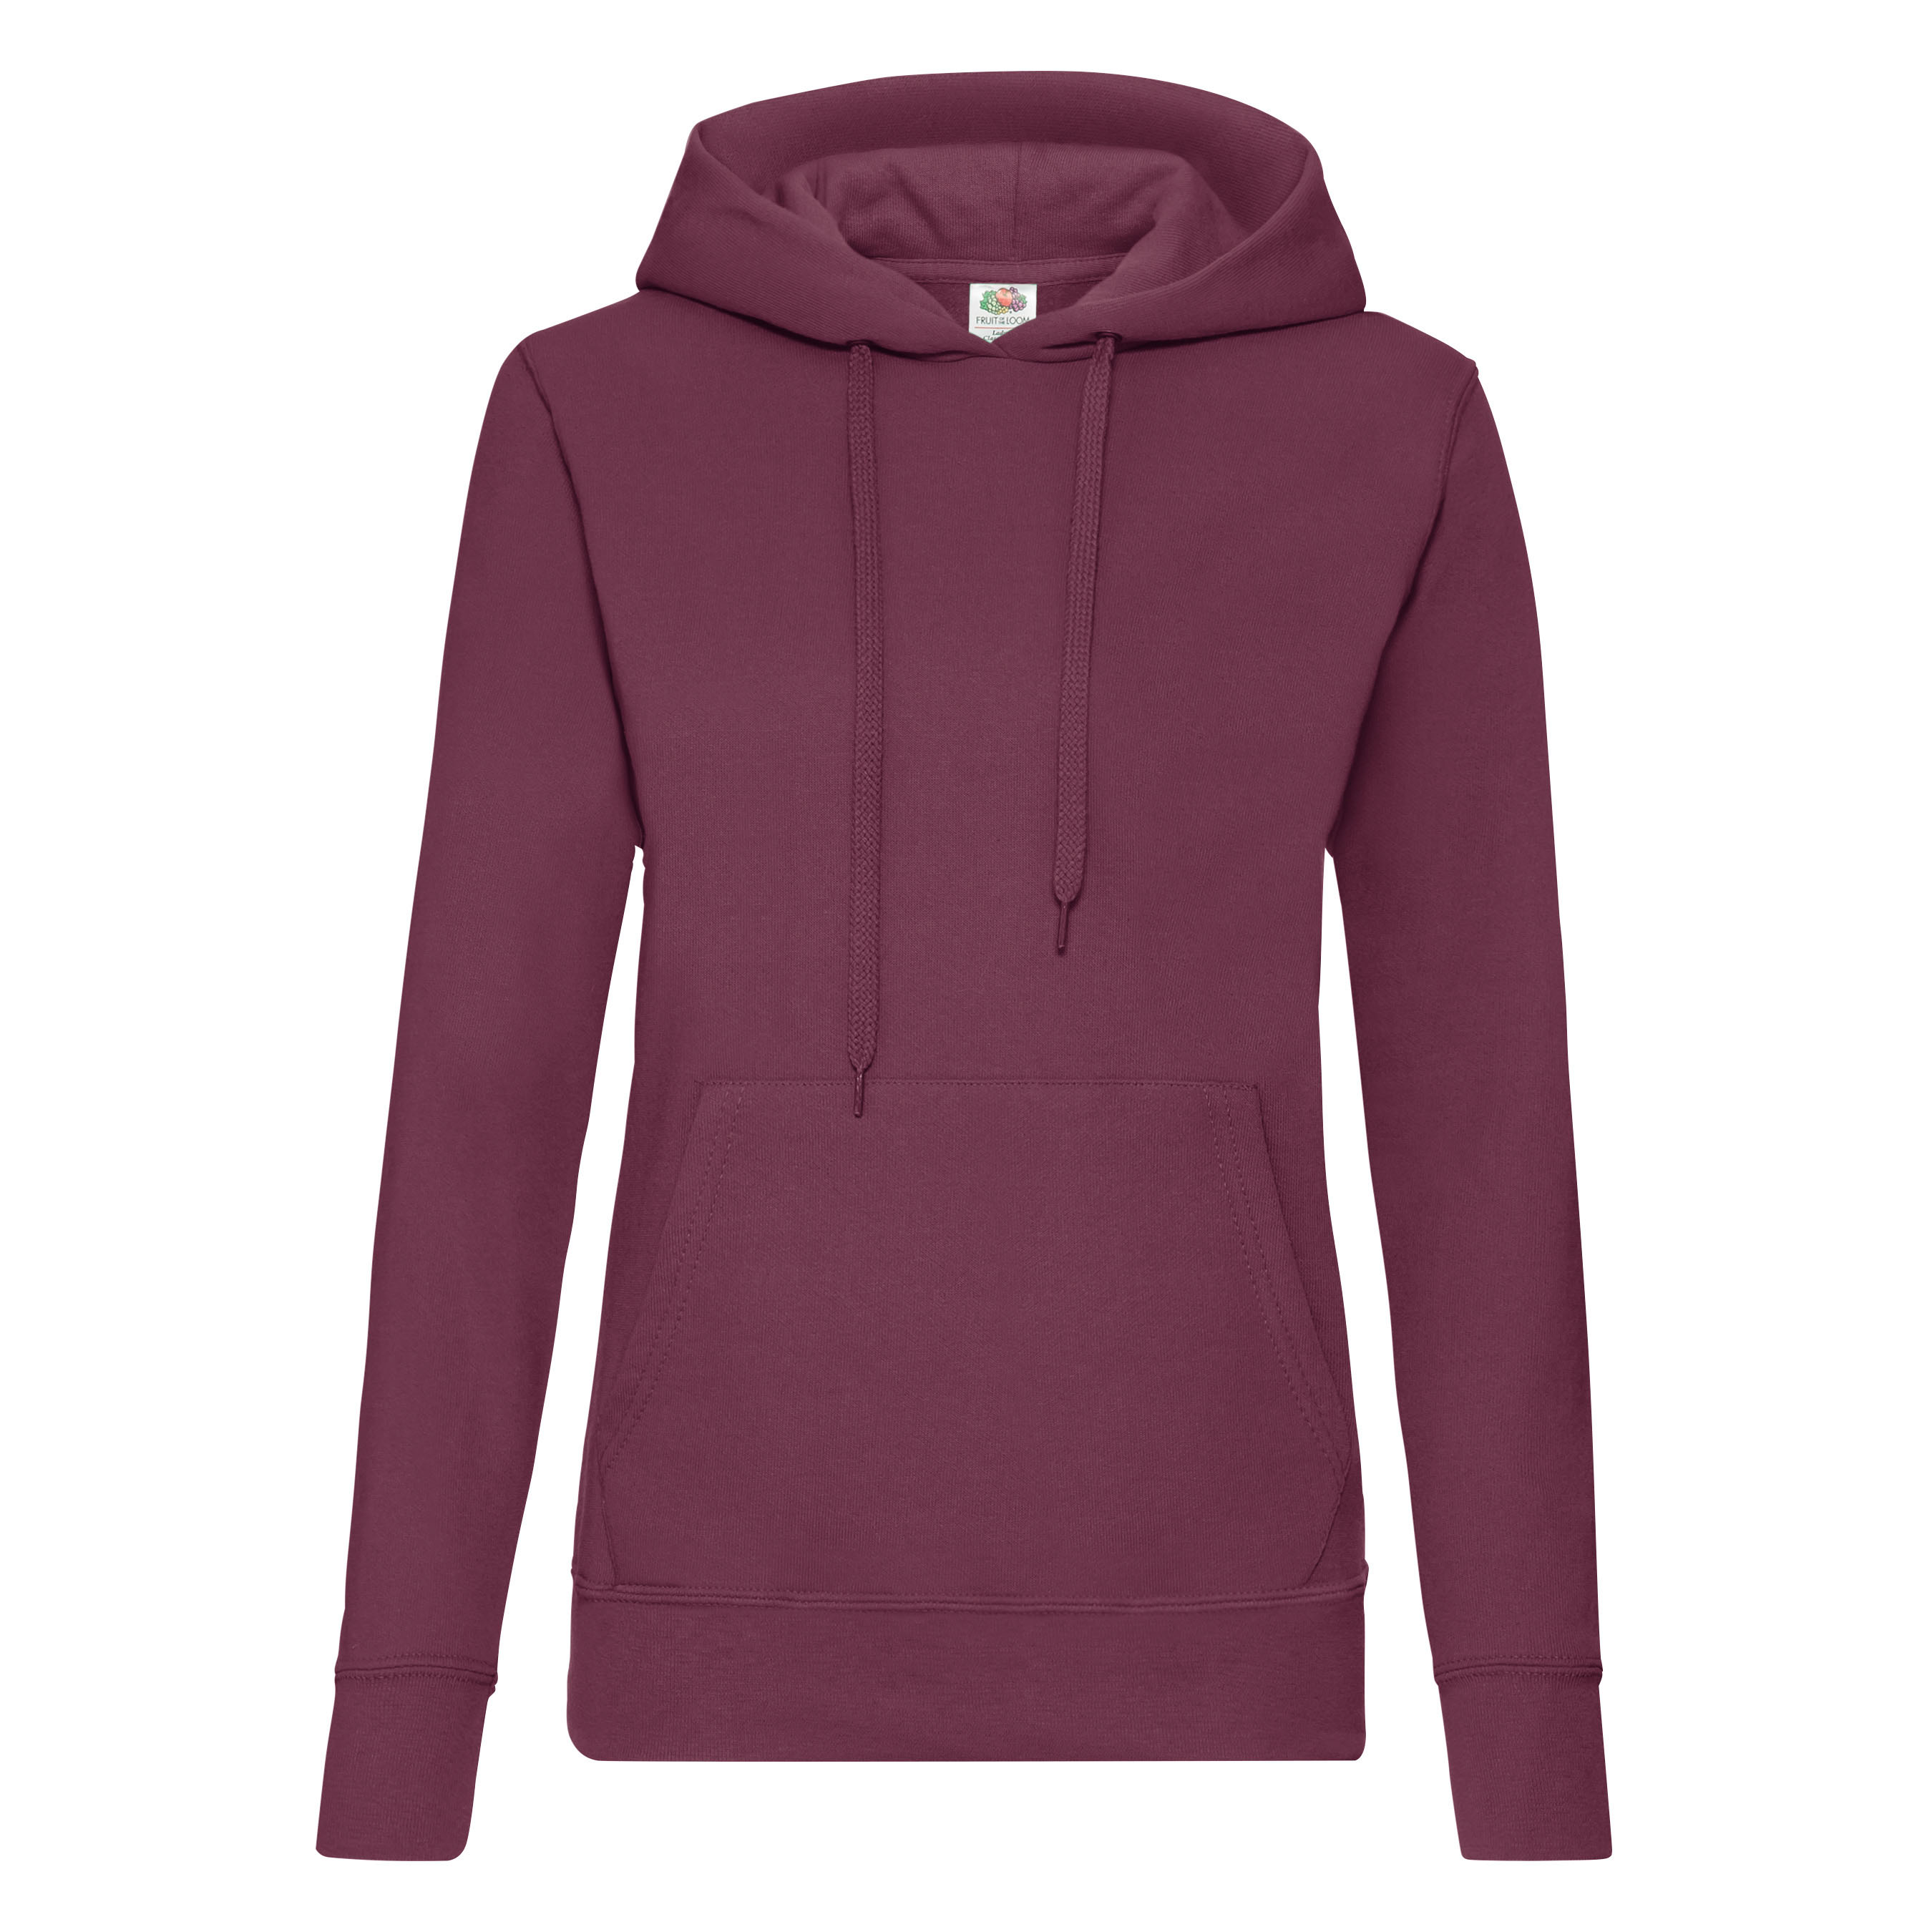 Damska bluza z kapturem Hooded Sweat Classic | Fruit of the Loom